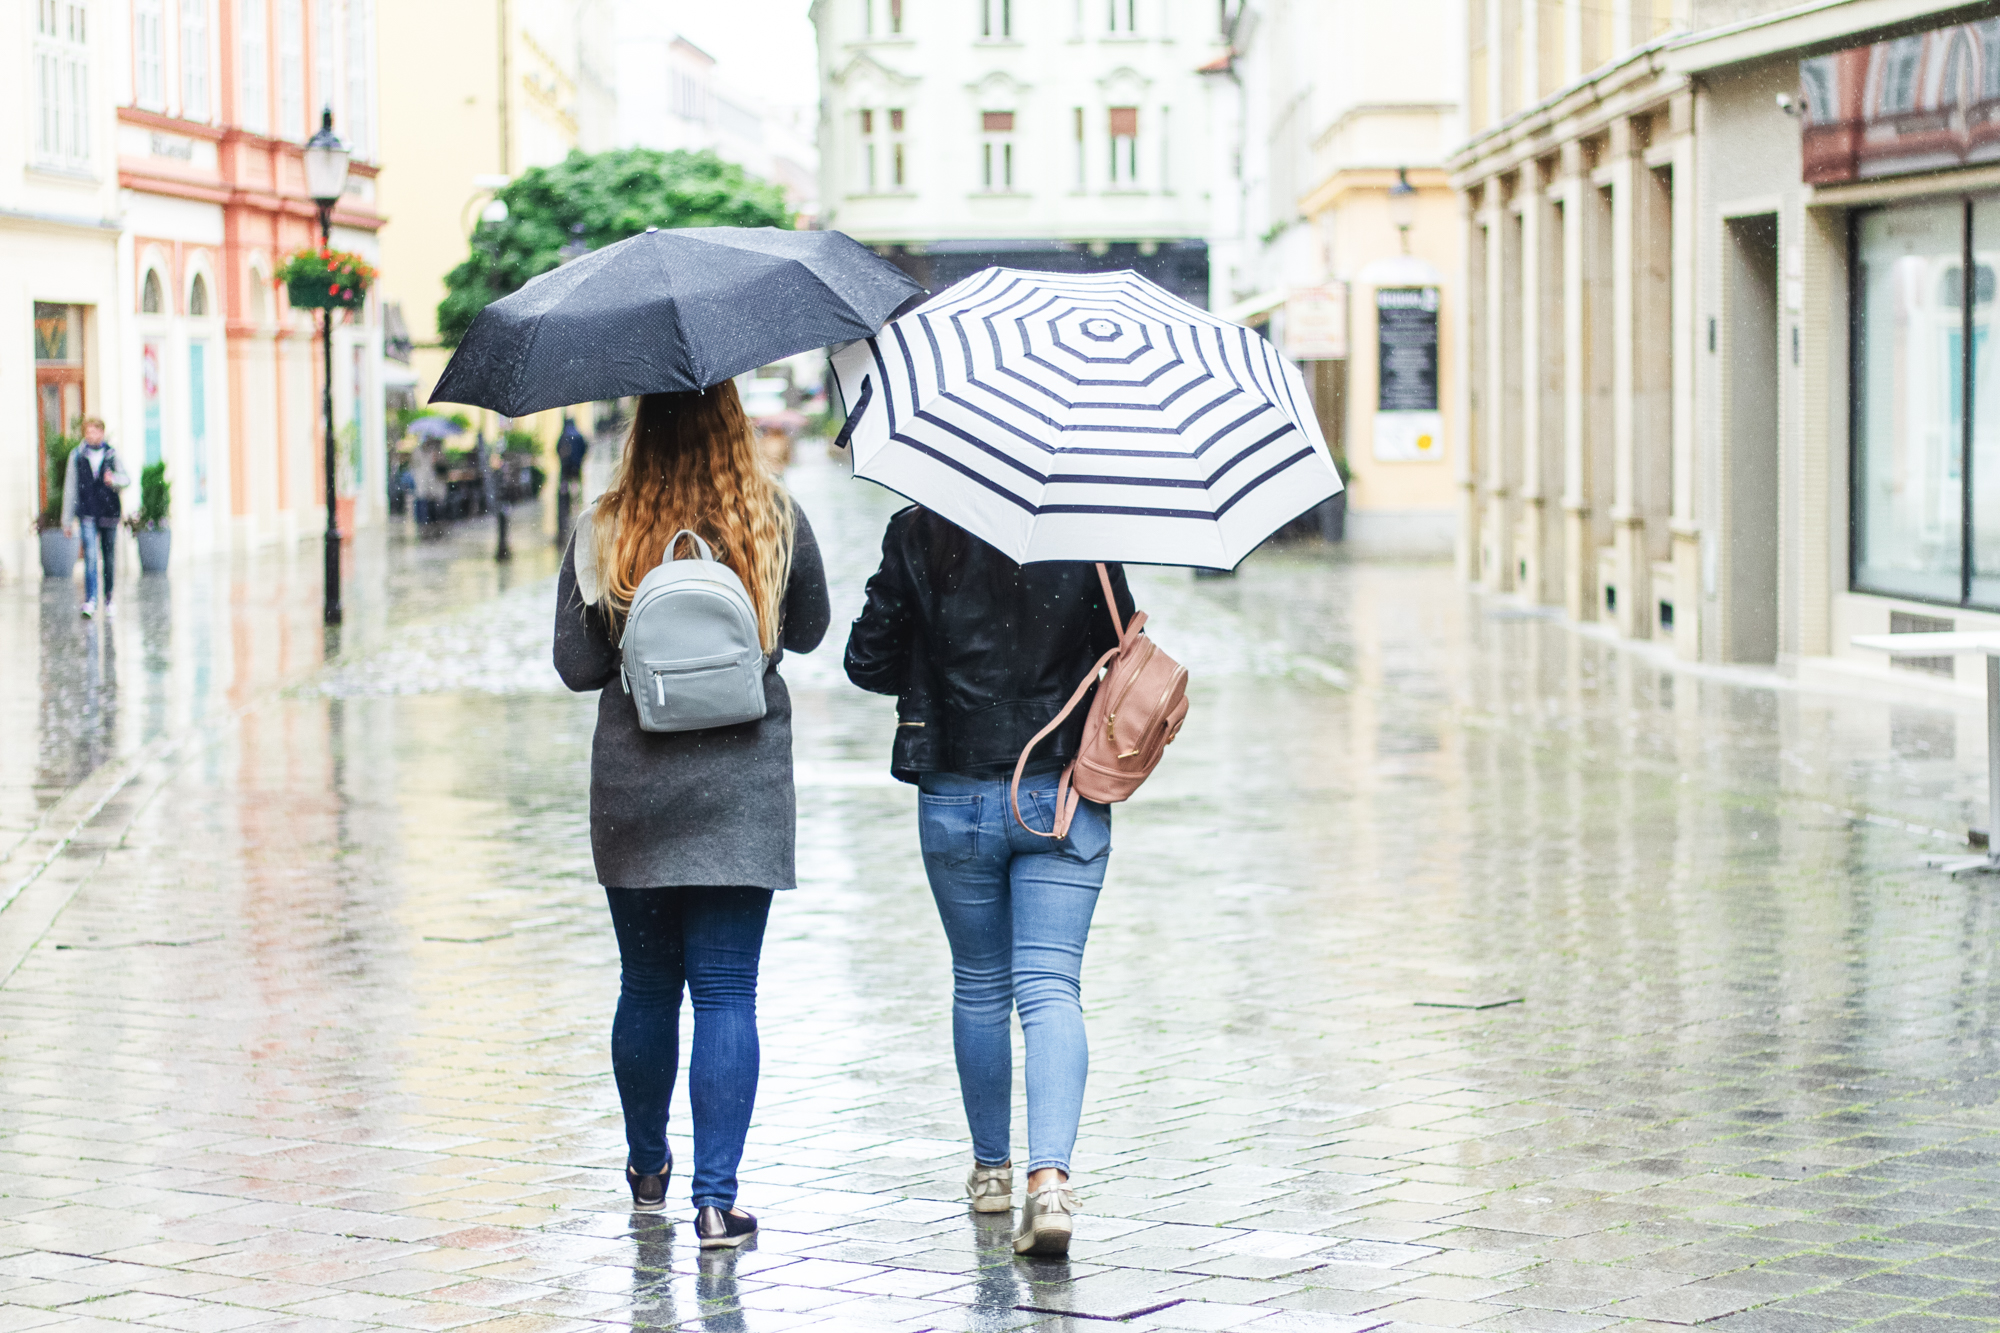 Two Girls Walking with Umbrellas In the Rain, Tografy, What to do when it rains on the day of your photo session